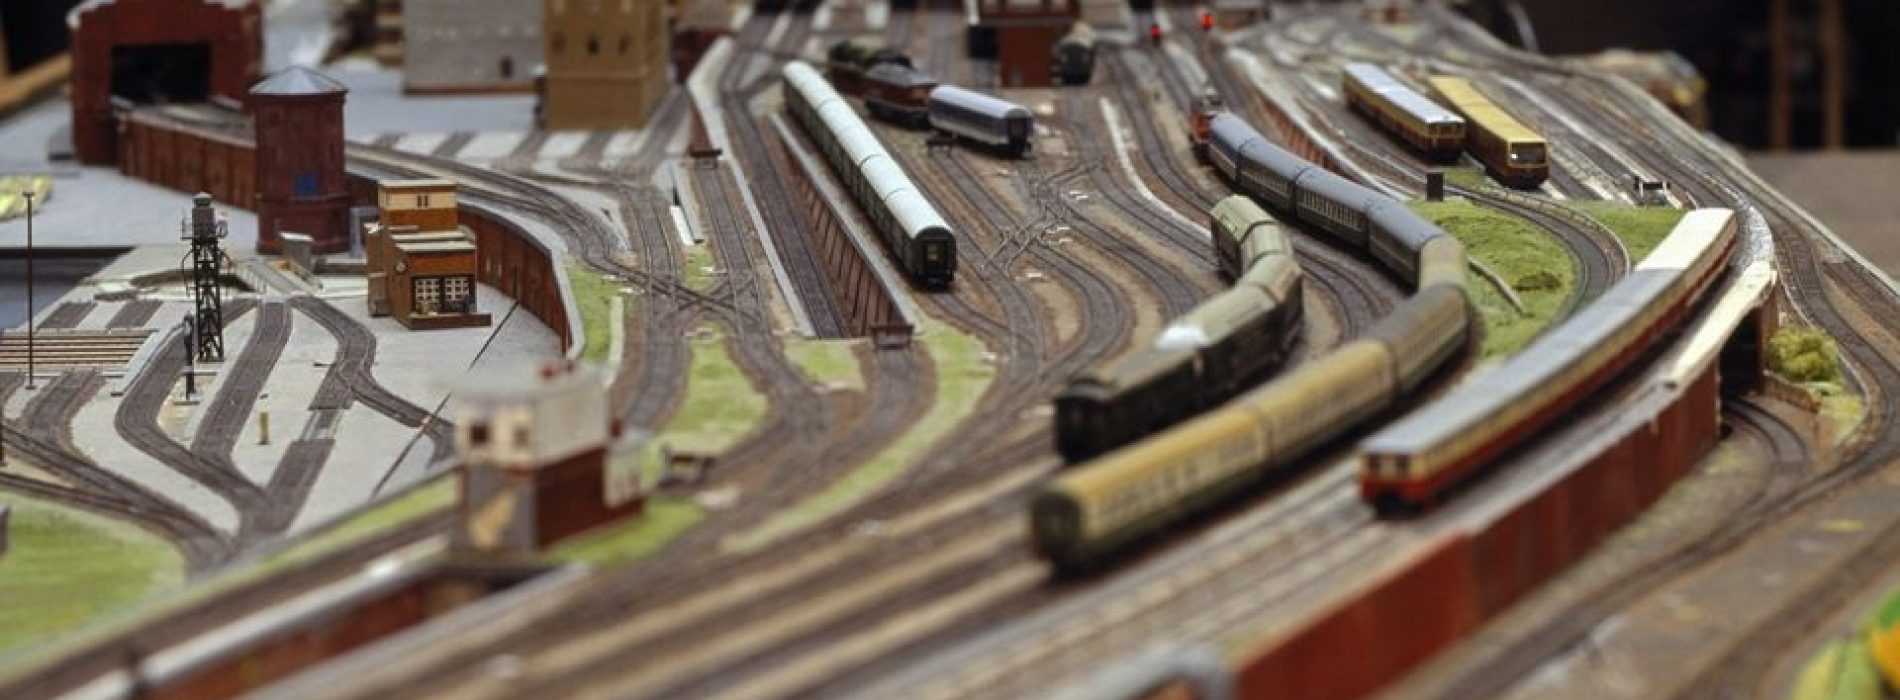 For what reason Would You Ever Want To Use DCC Track Wiring On A Model Train Layout?